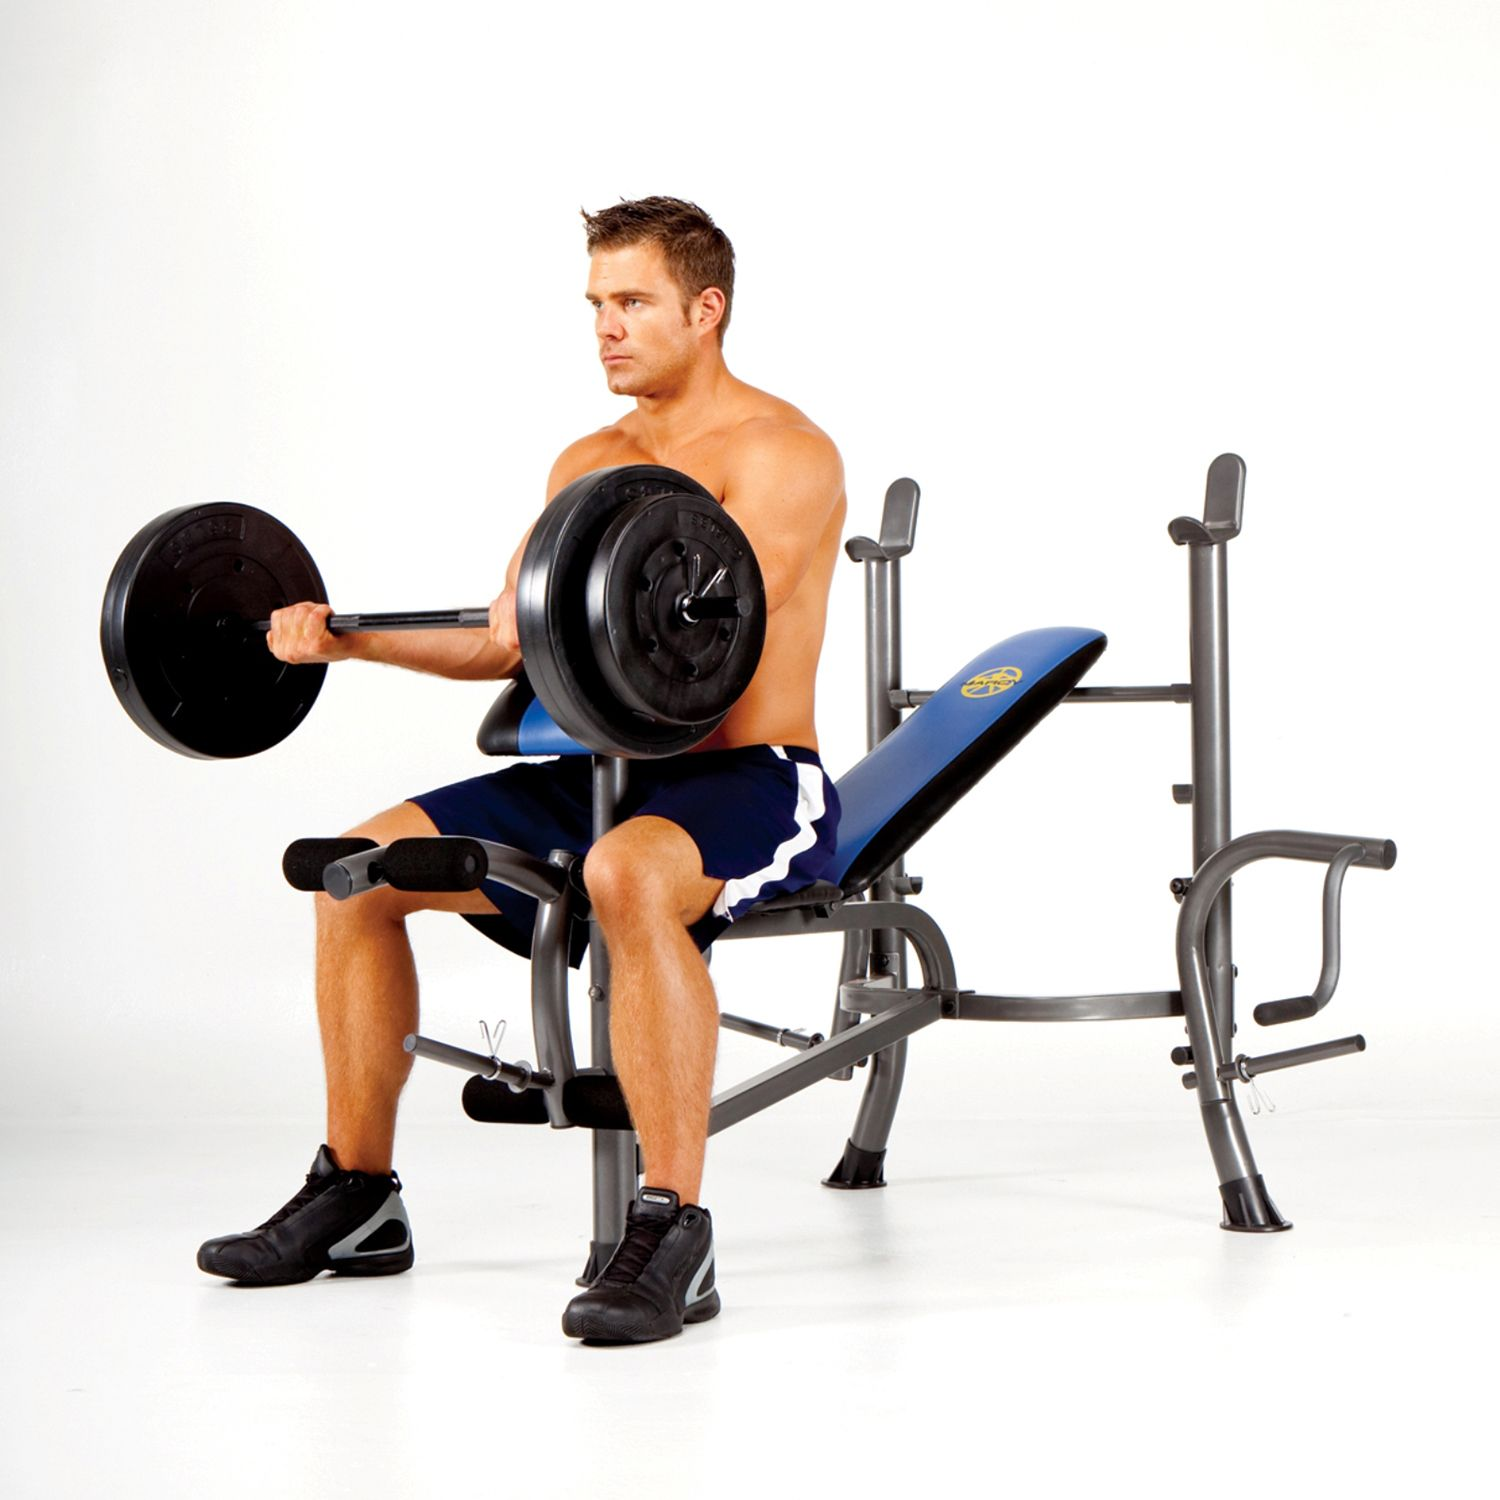 Weight Benches Fitness Sports & Fitness